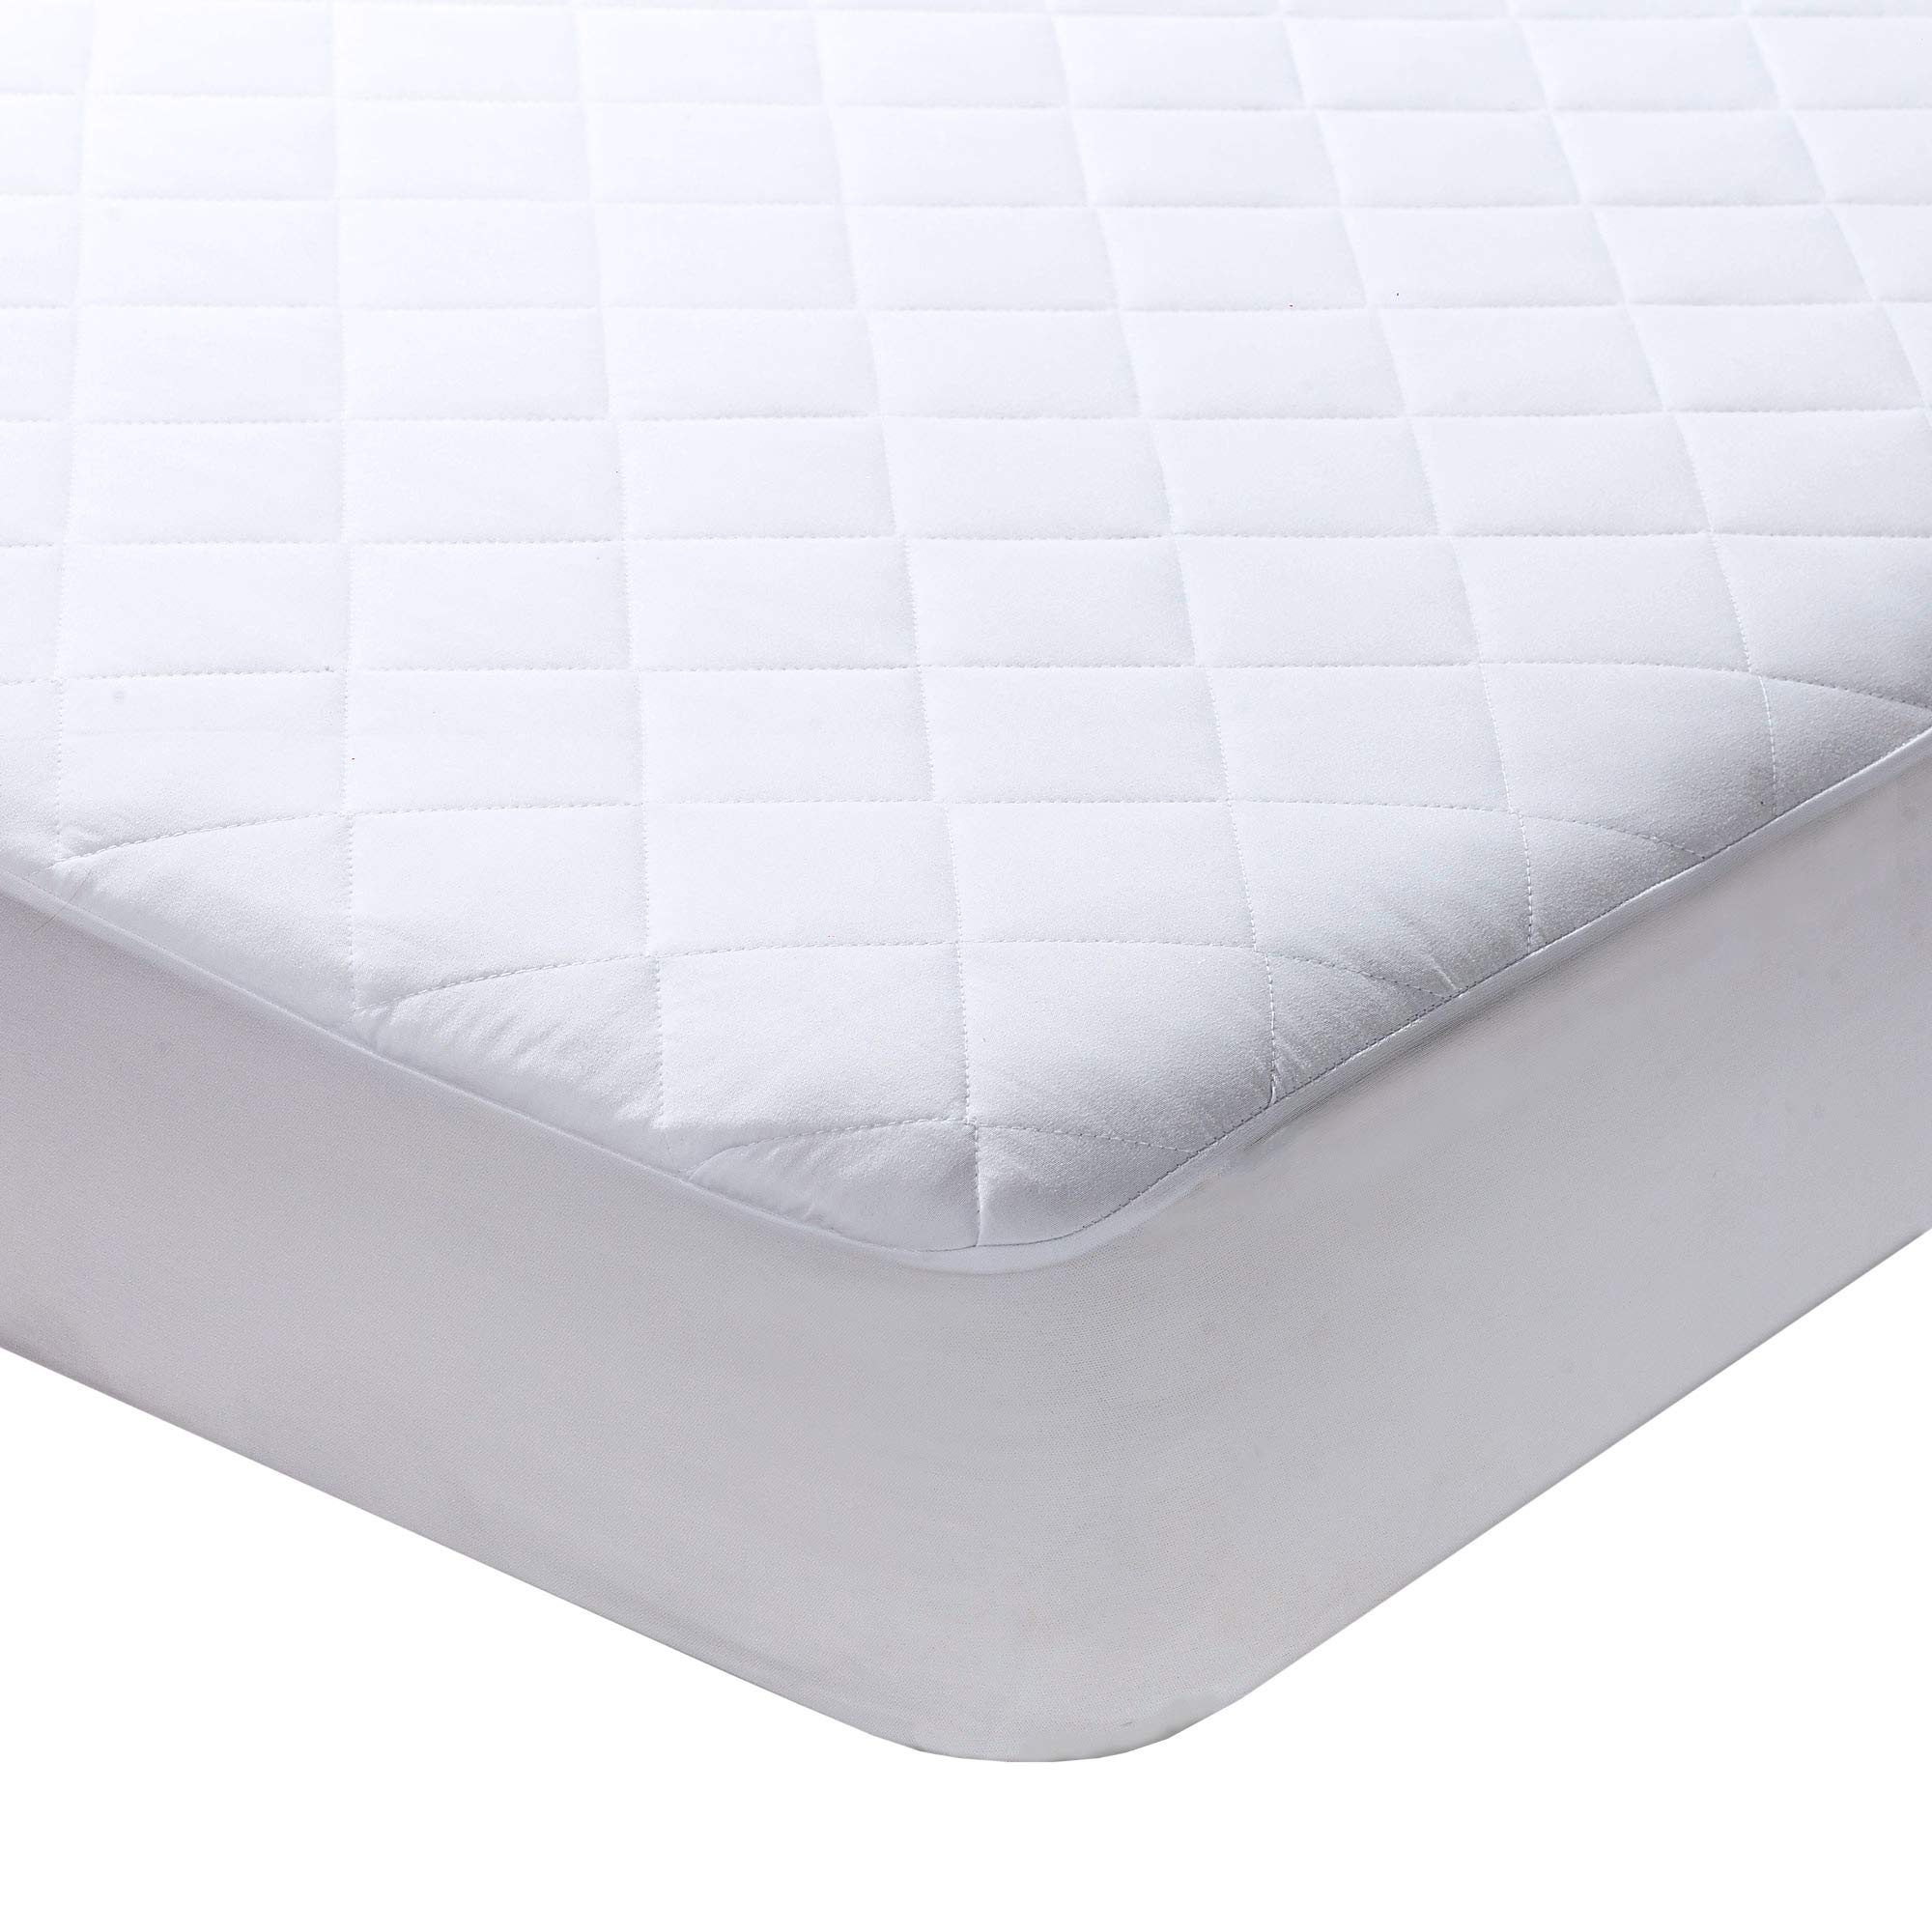 Milddreams Full Mattress Pad Cover Protector - Bed Pad Size (54x75 inches + 16'' Deep Pocket) - Quilted Fitted Sheet Hypoallergenic Protection